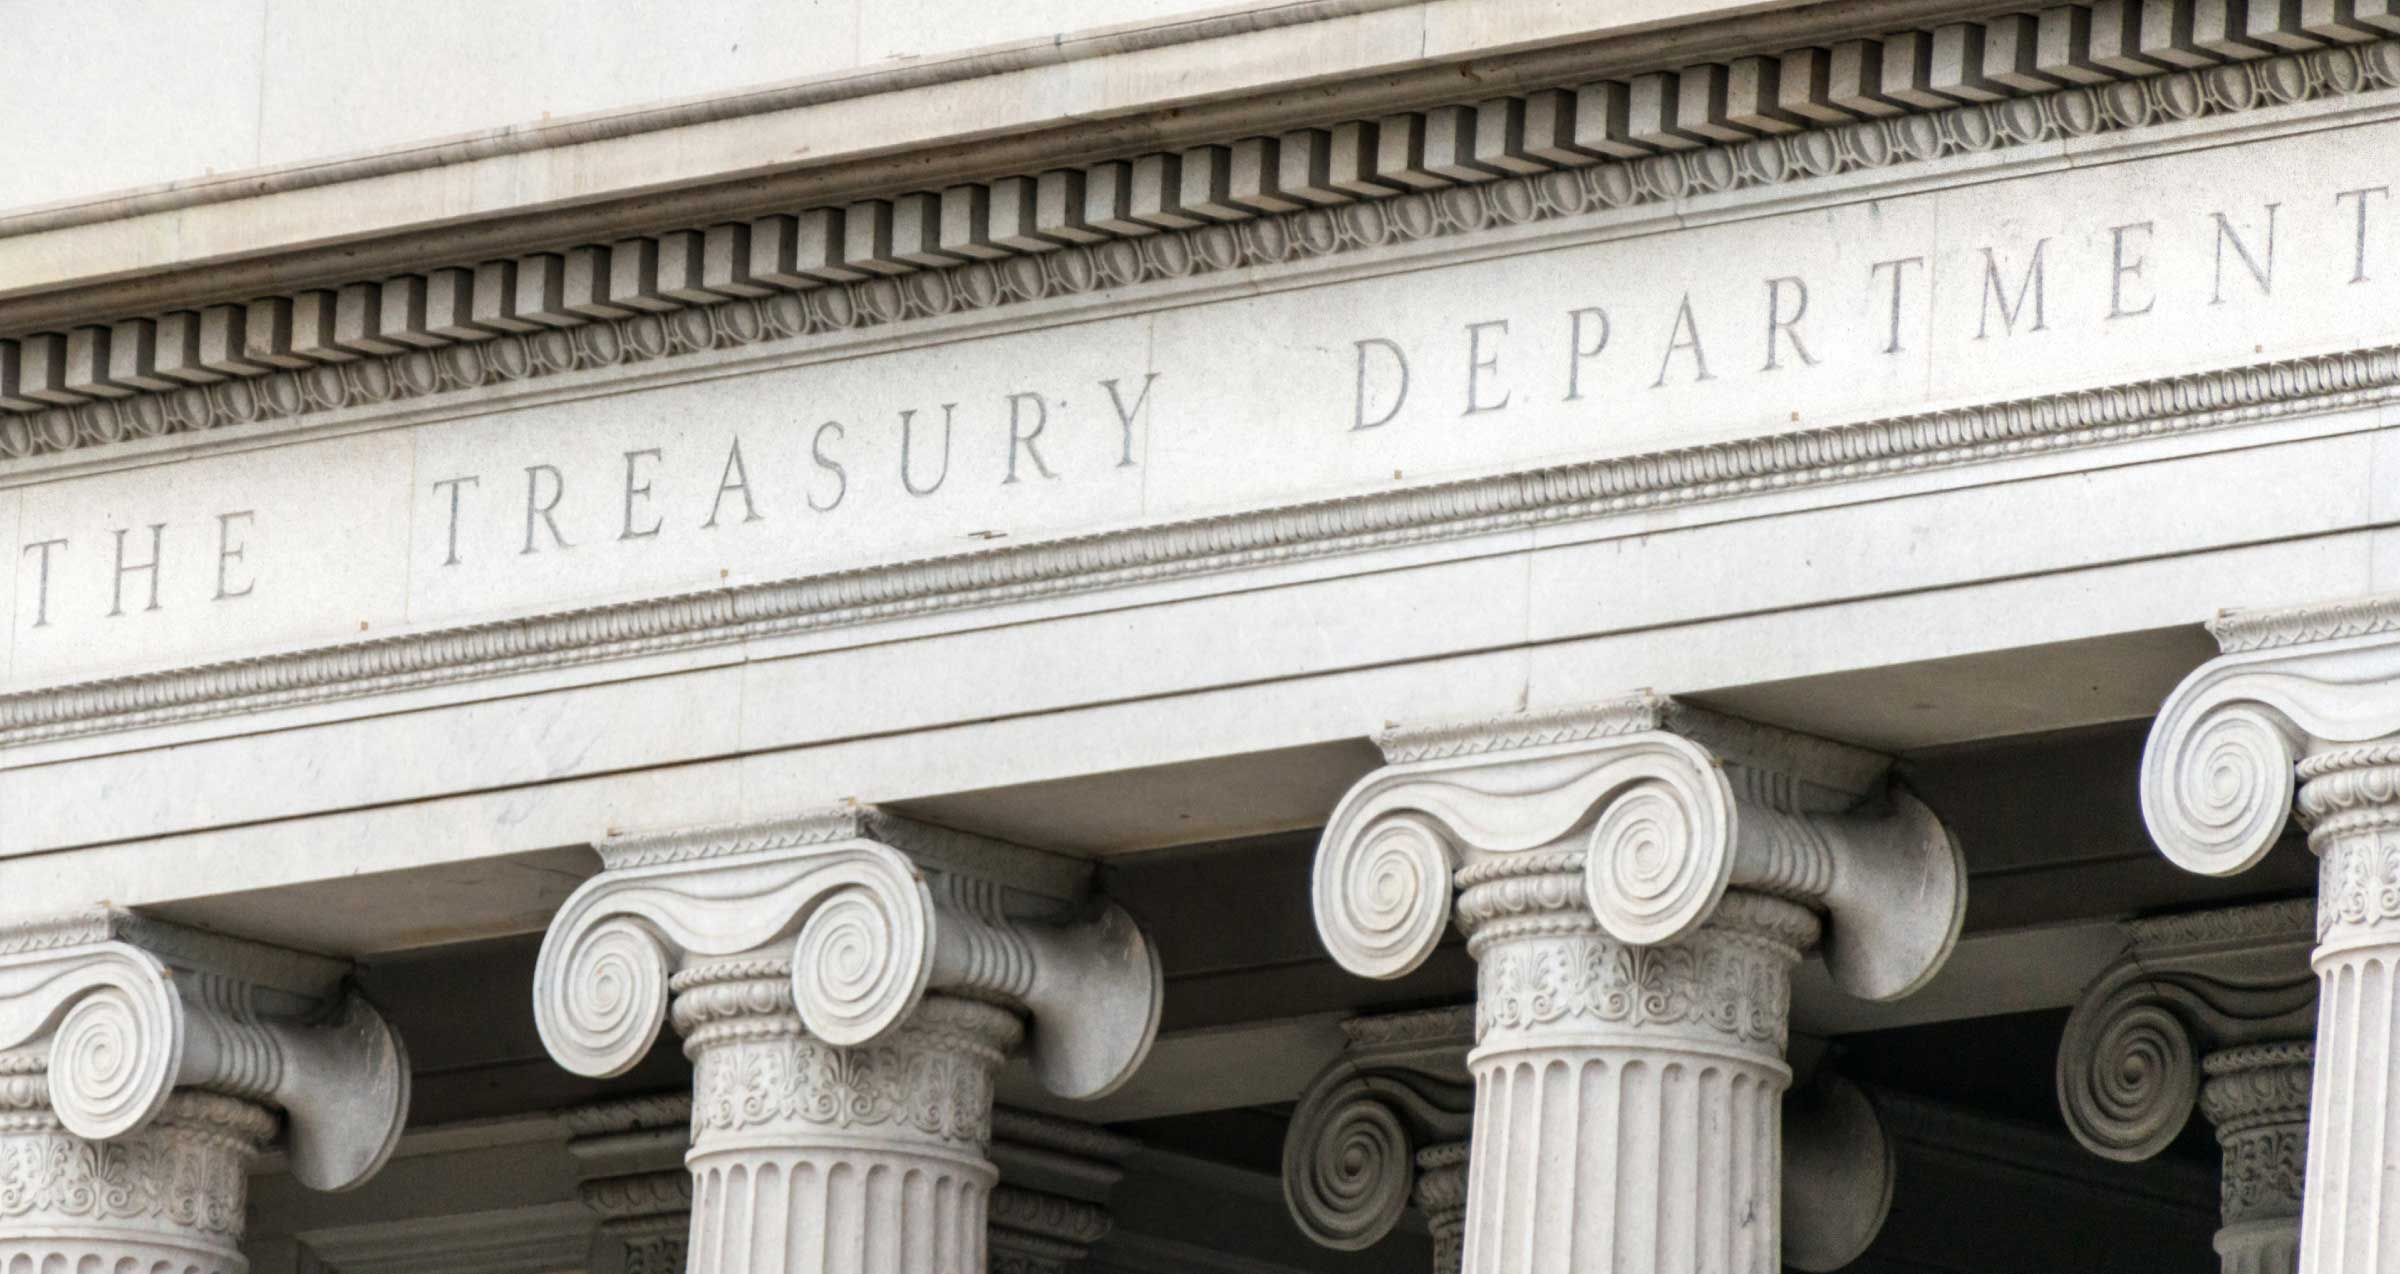 The Treasury Department outside of building